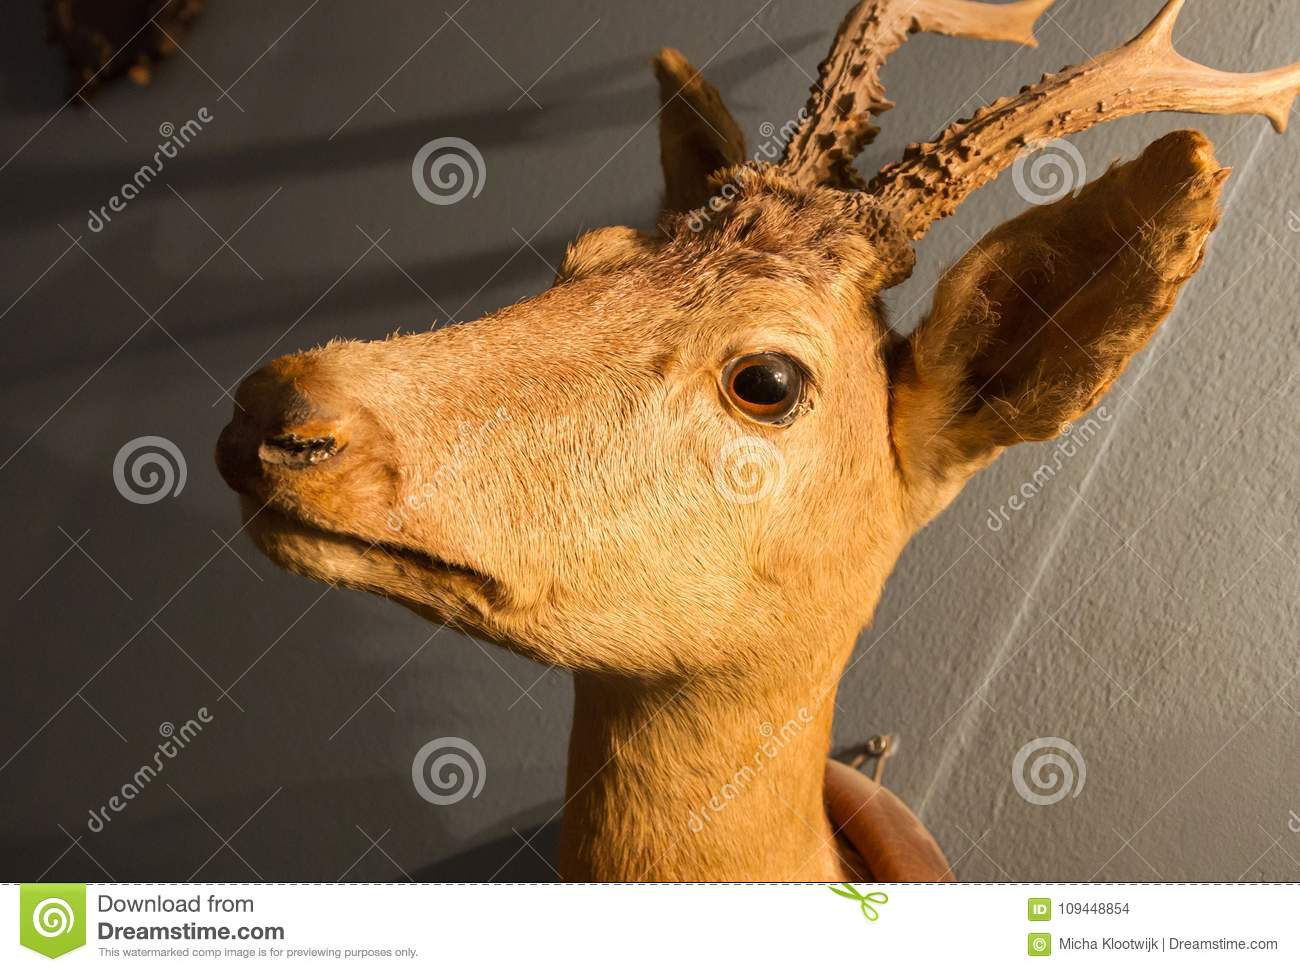 Stuffed deer head stock photo. Image of anatomy, deer - 109448854